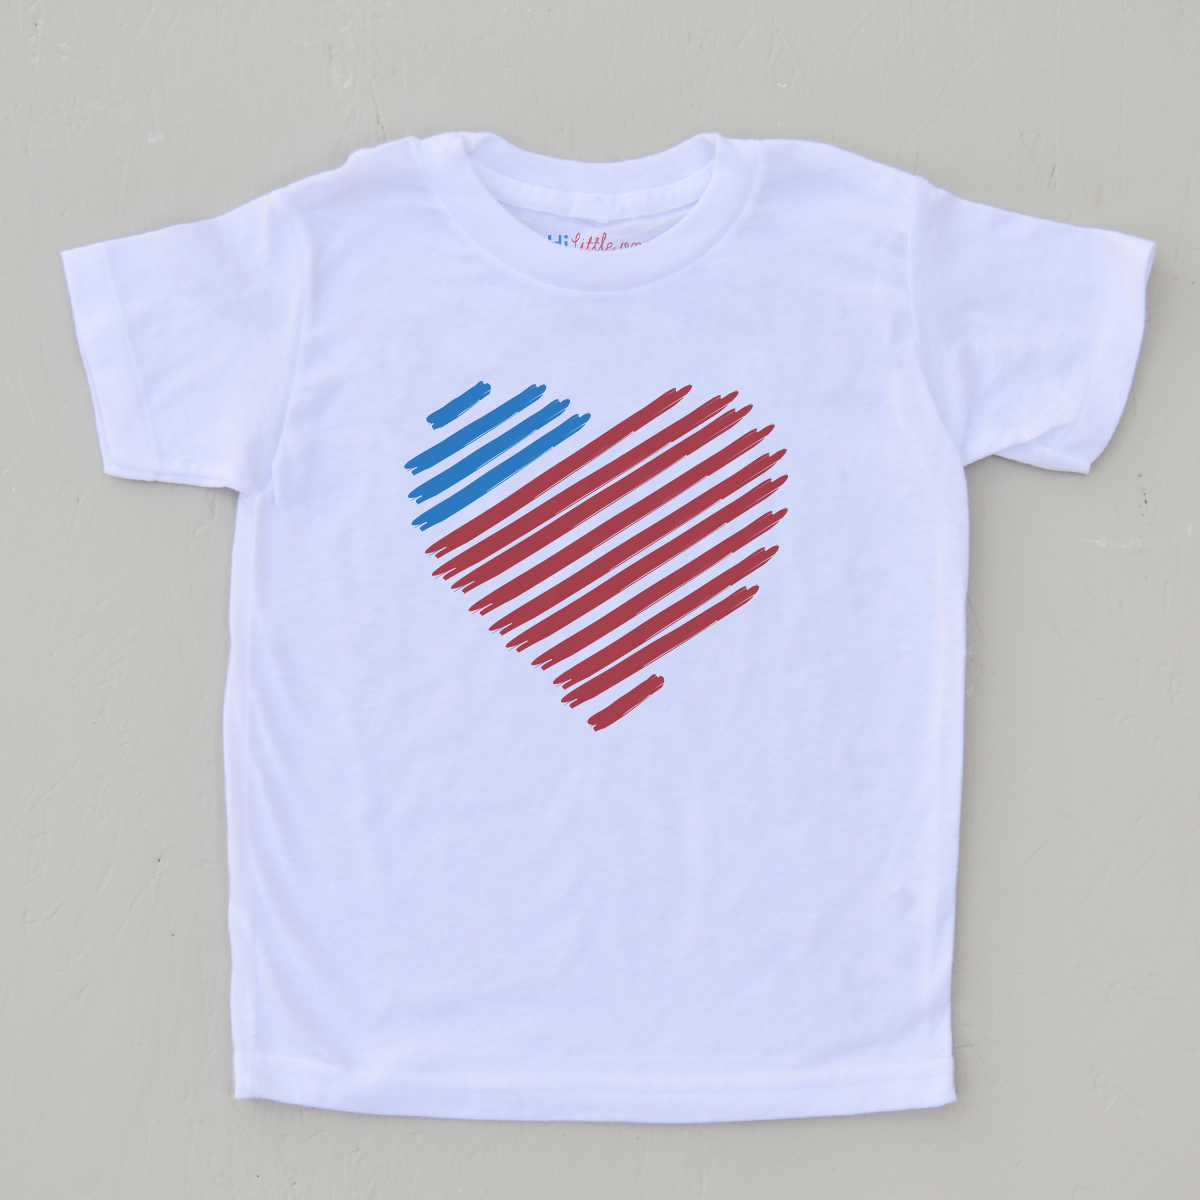 Red, White, and Blue Heart T-shirt   Blue heart, Shirts, T ...